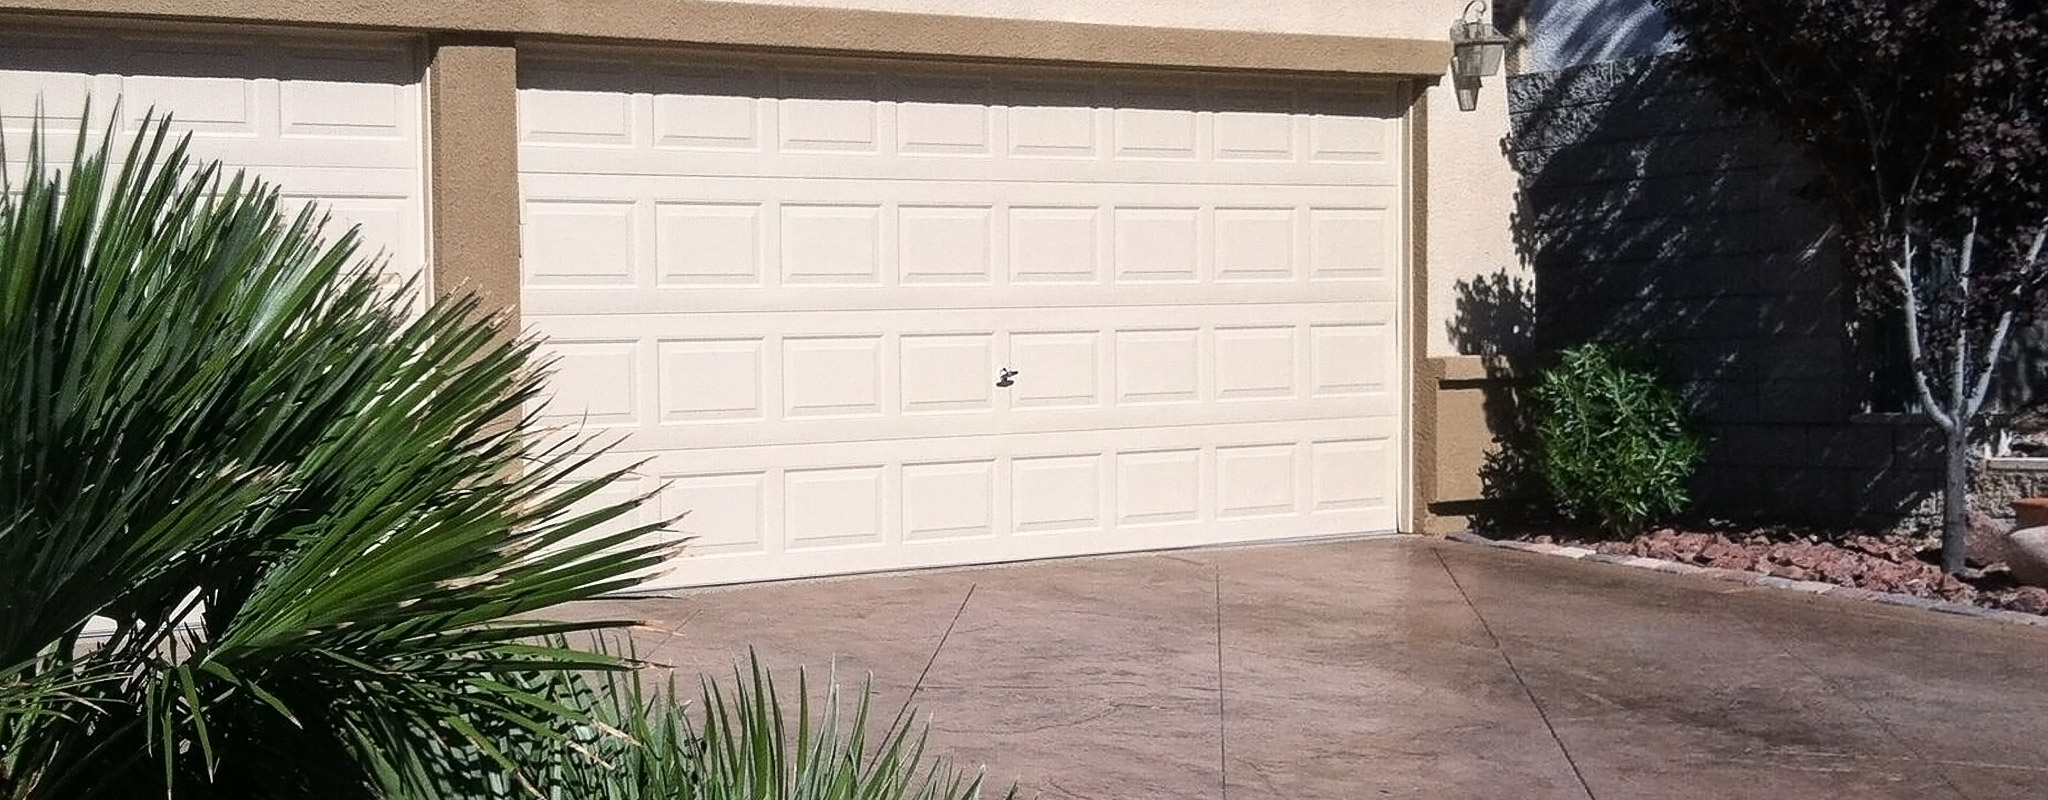 Garage Door Installation Expert Install